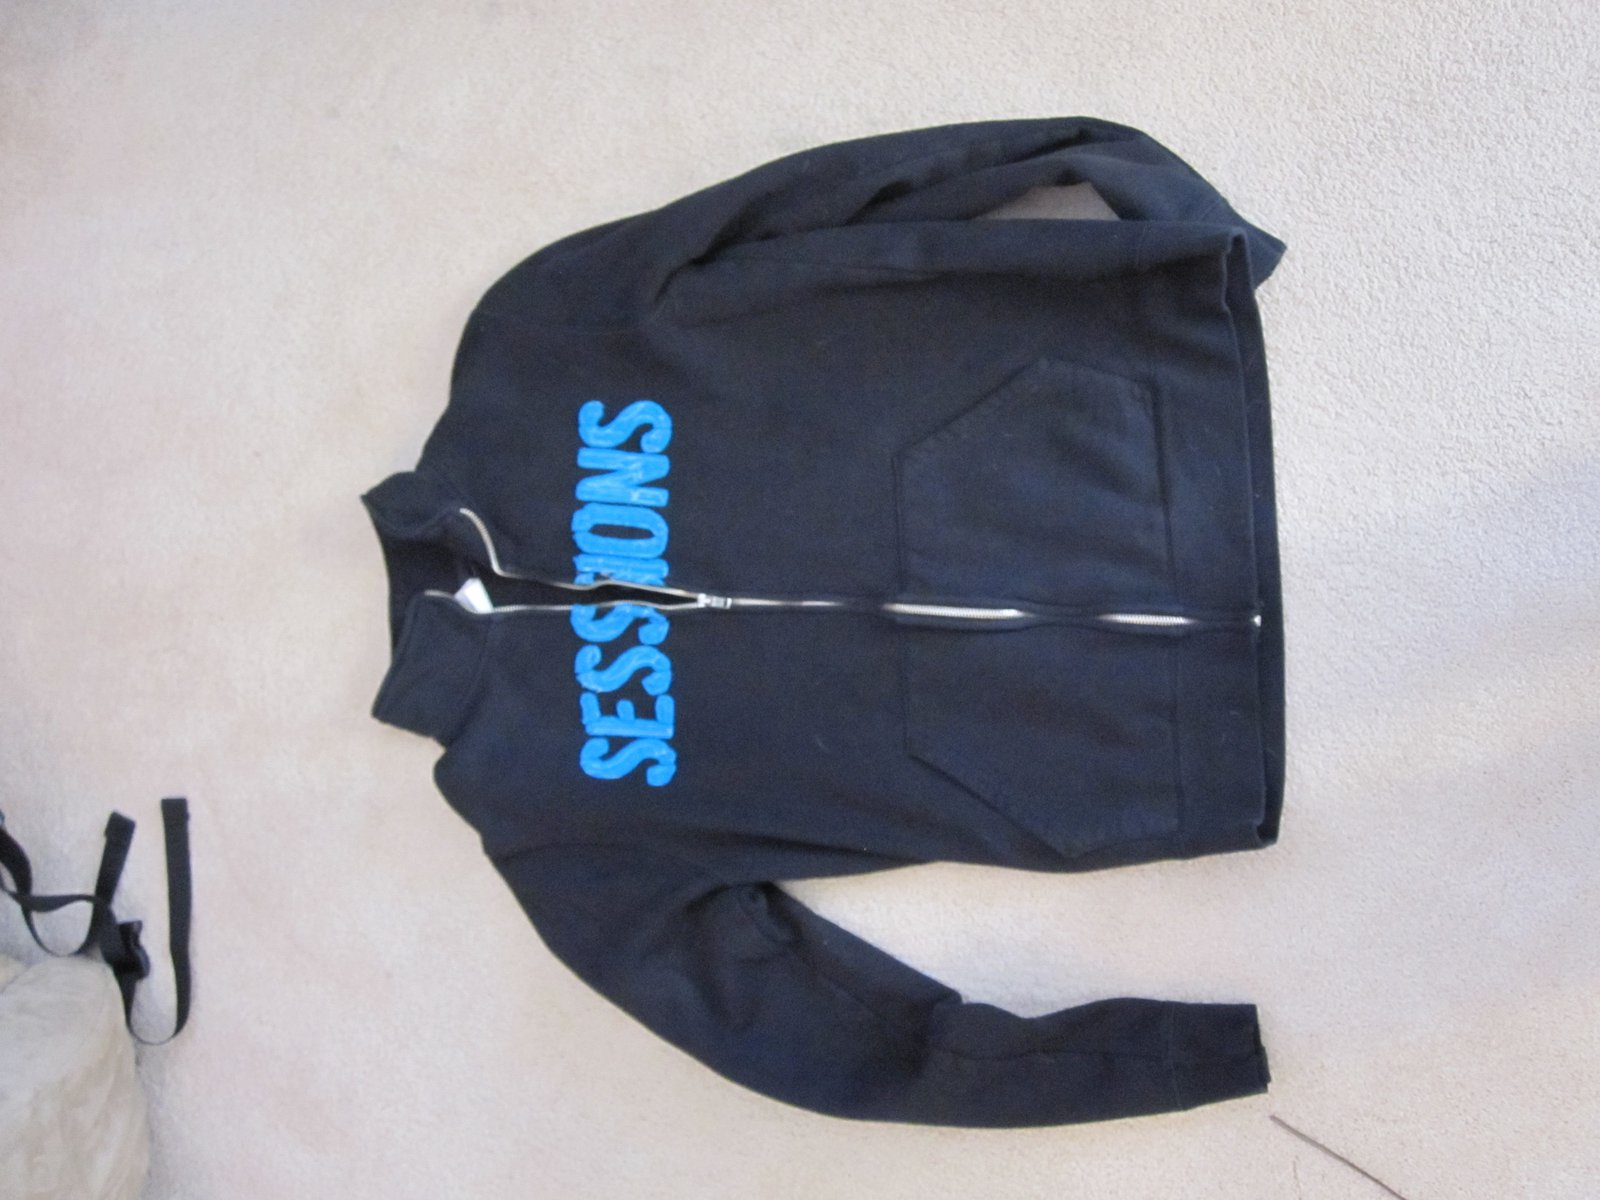 Session sweater